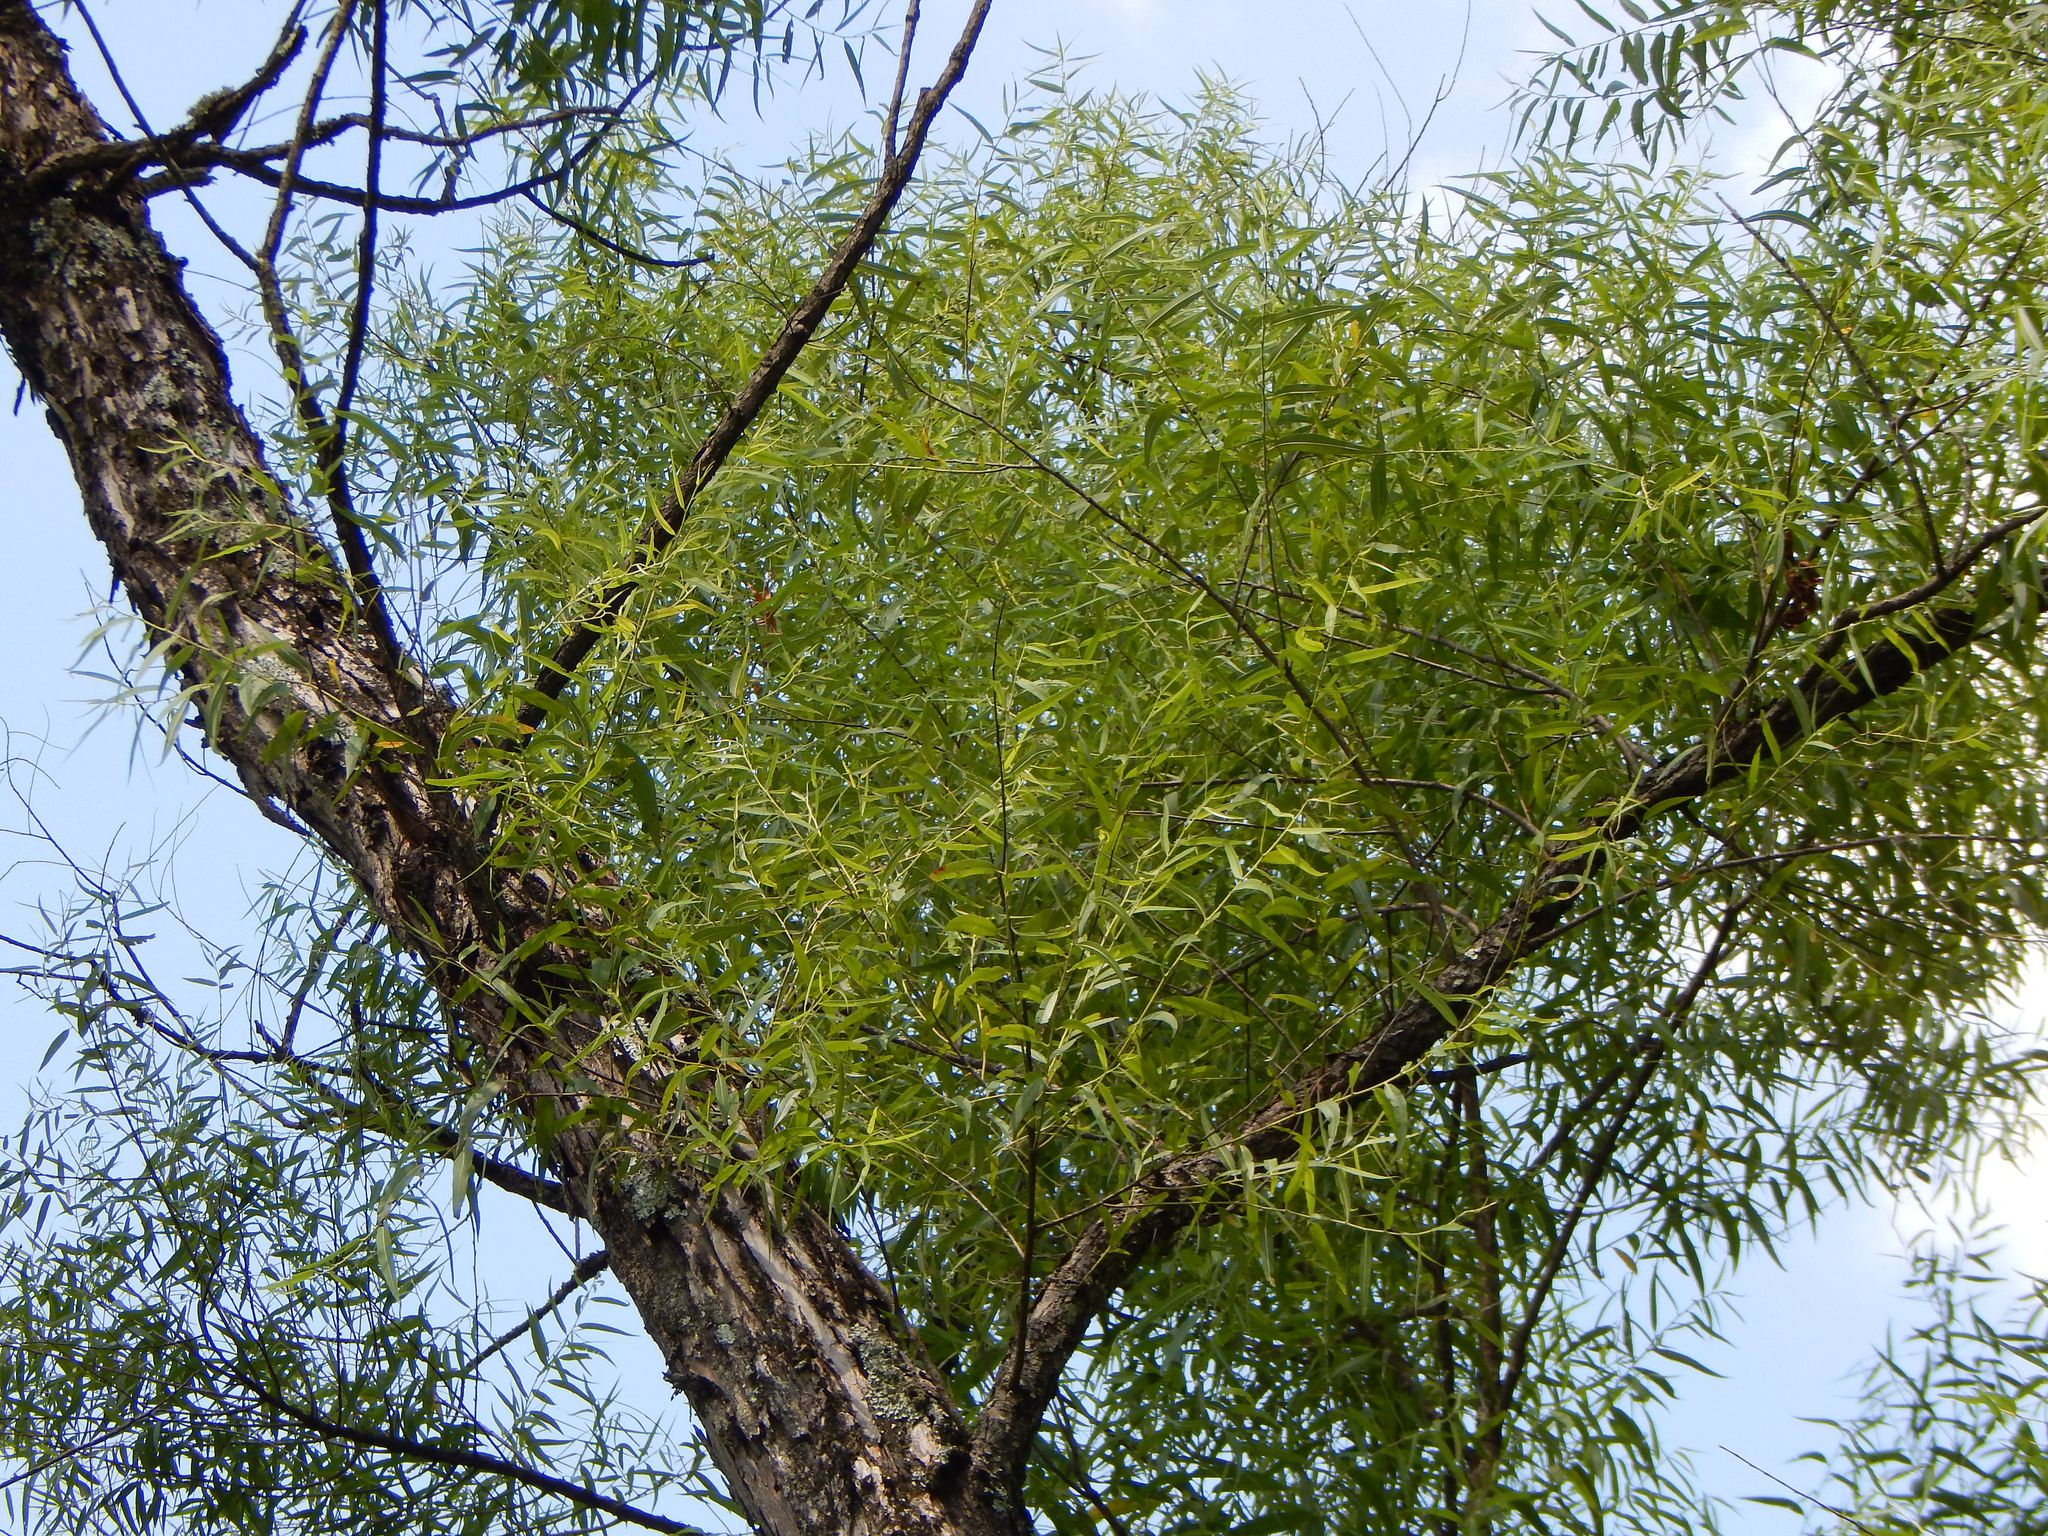 Black willow tree branches.